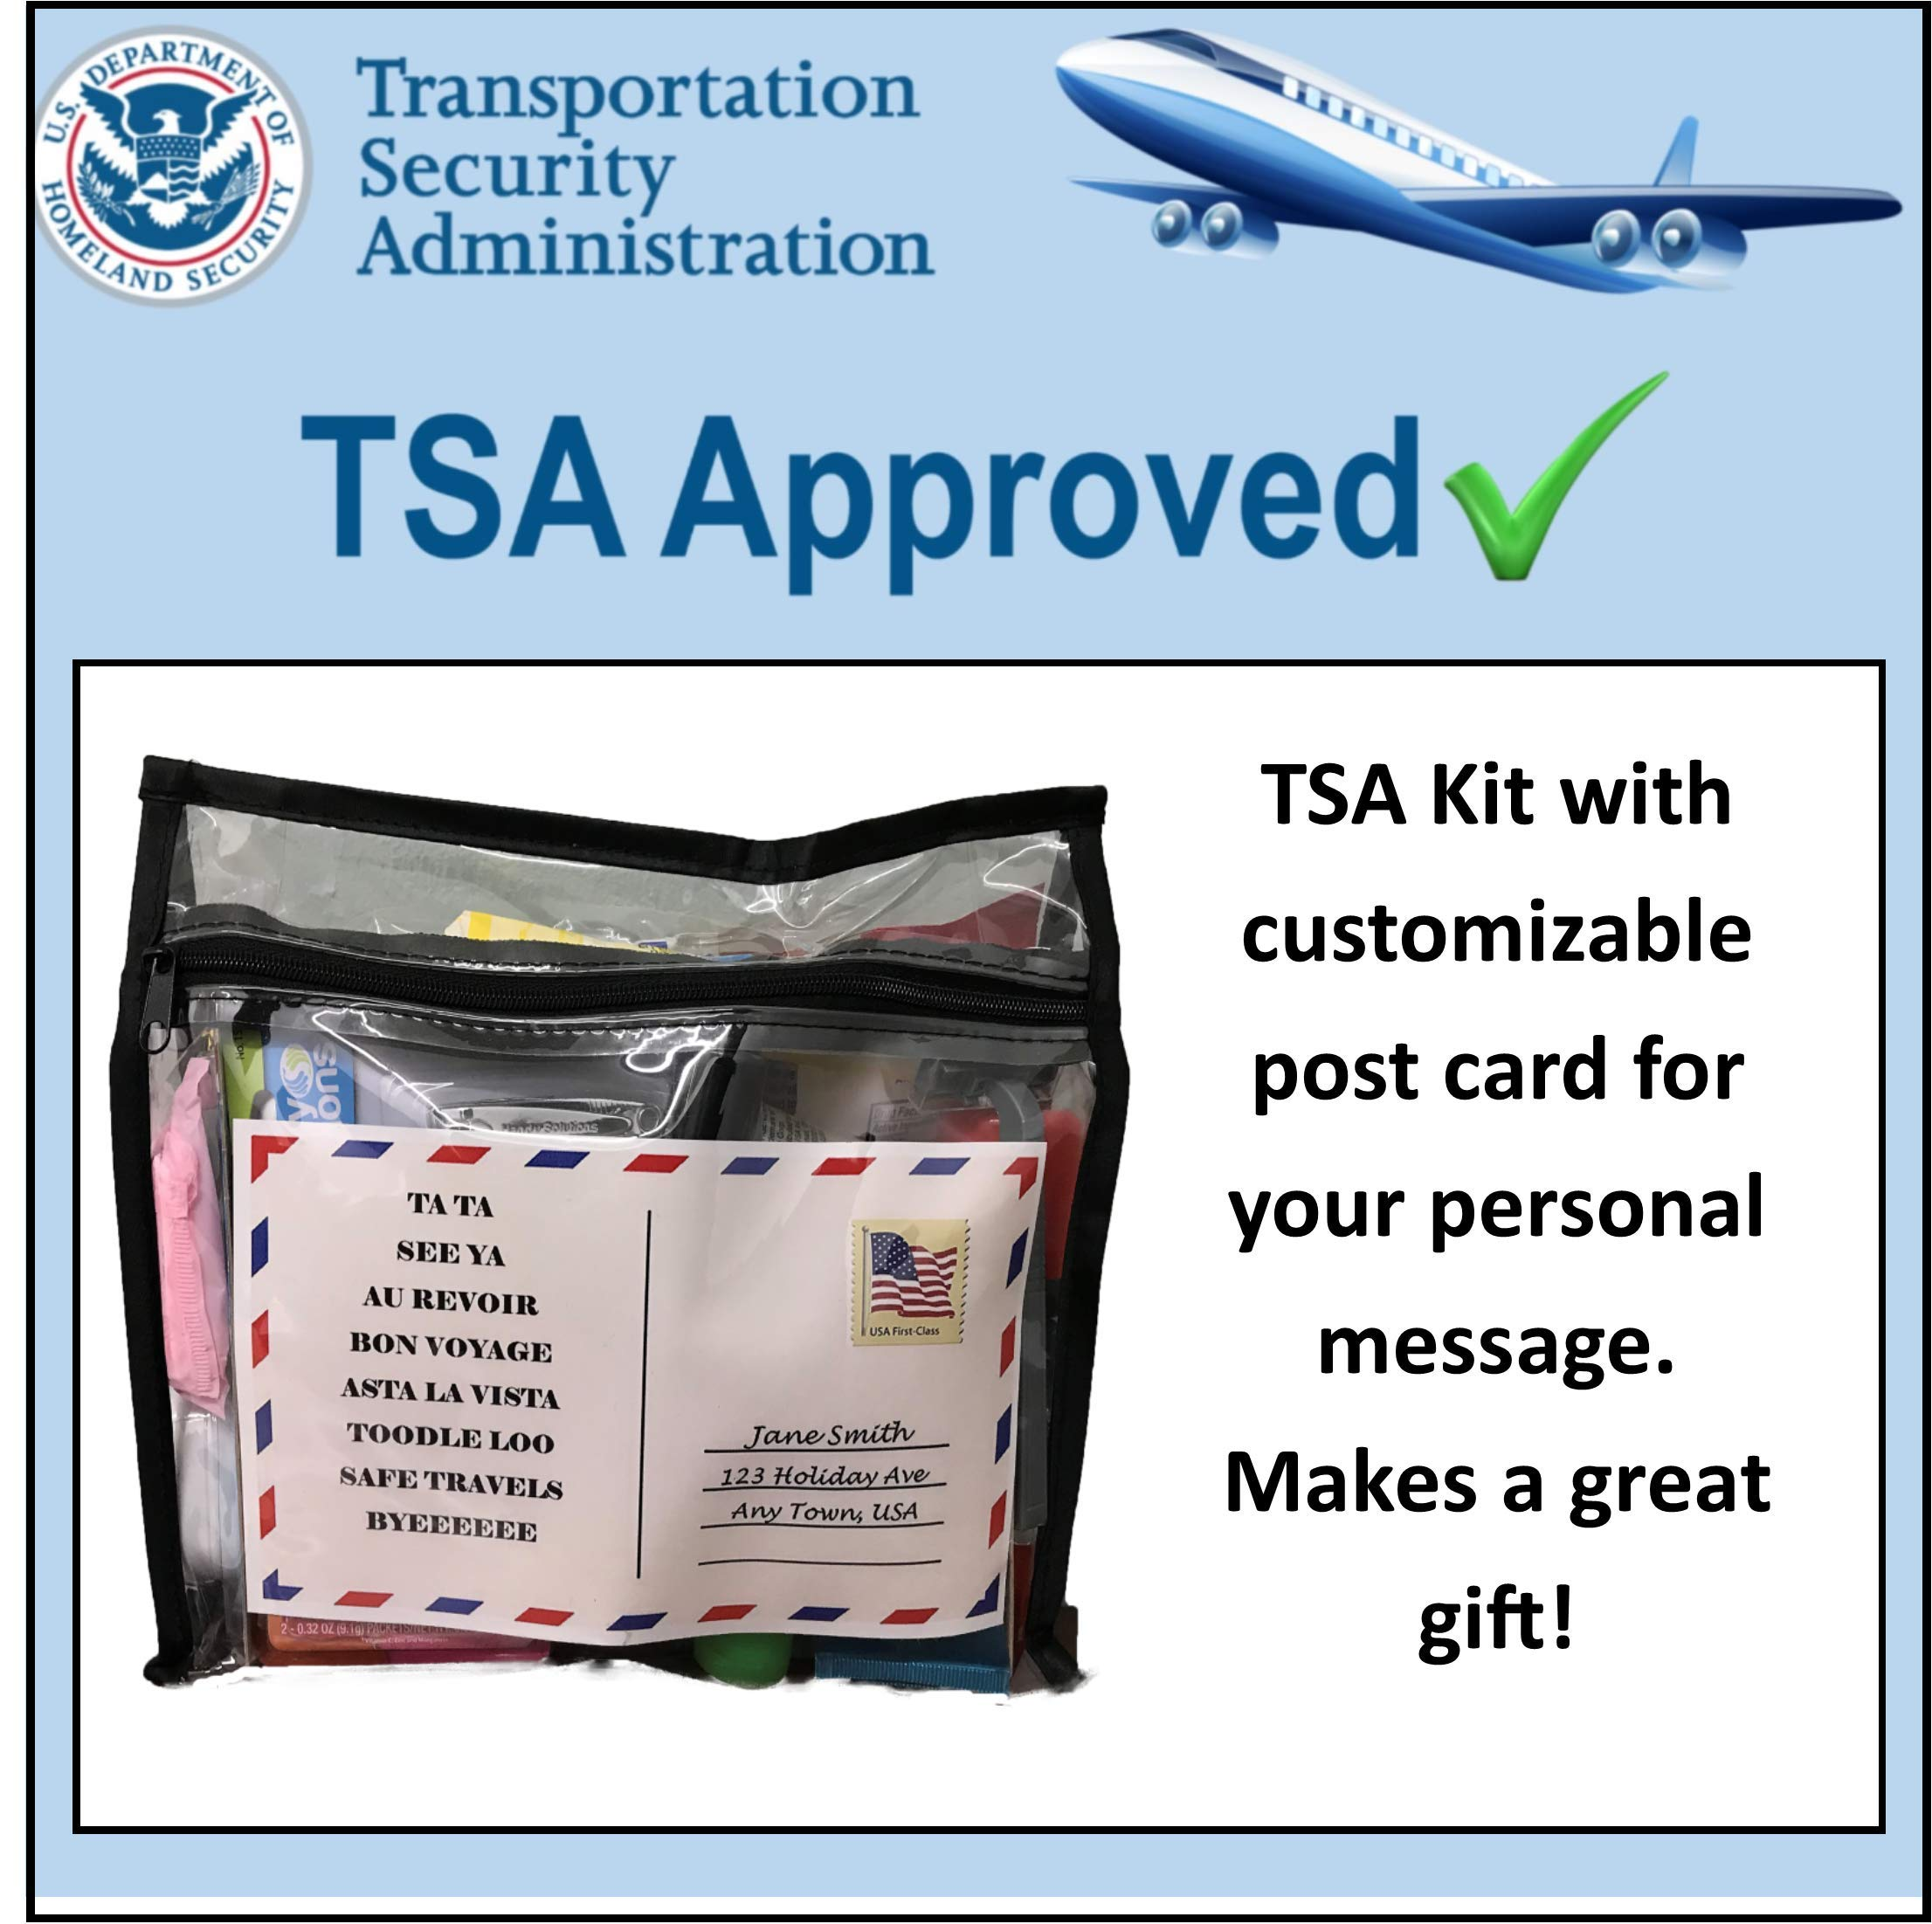 TSA Approved Women's Toiletry Kit 62 Popular Name Brand Items. Compare to Box Store Pricing,Eeach Item Costs Around $0.92 Each. Great Gift for Travel Companions or Business Trips.